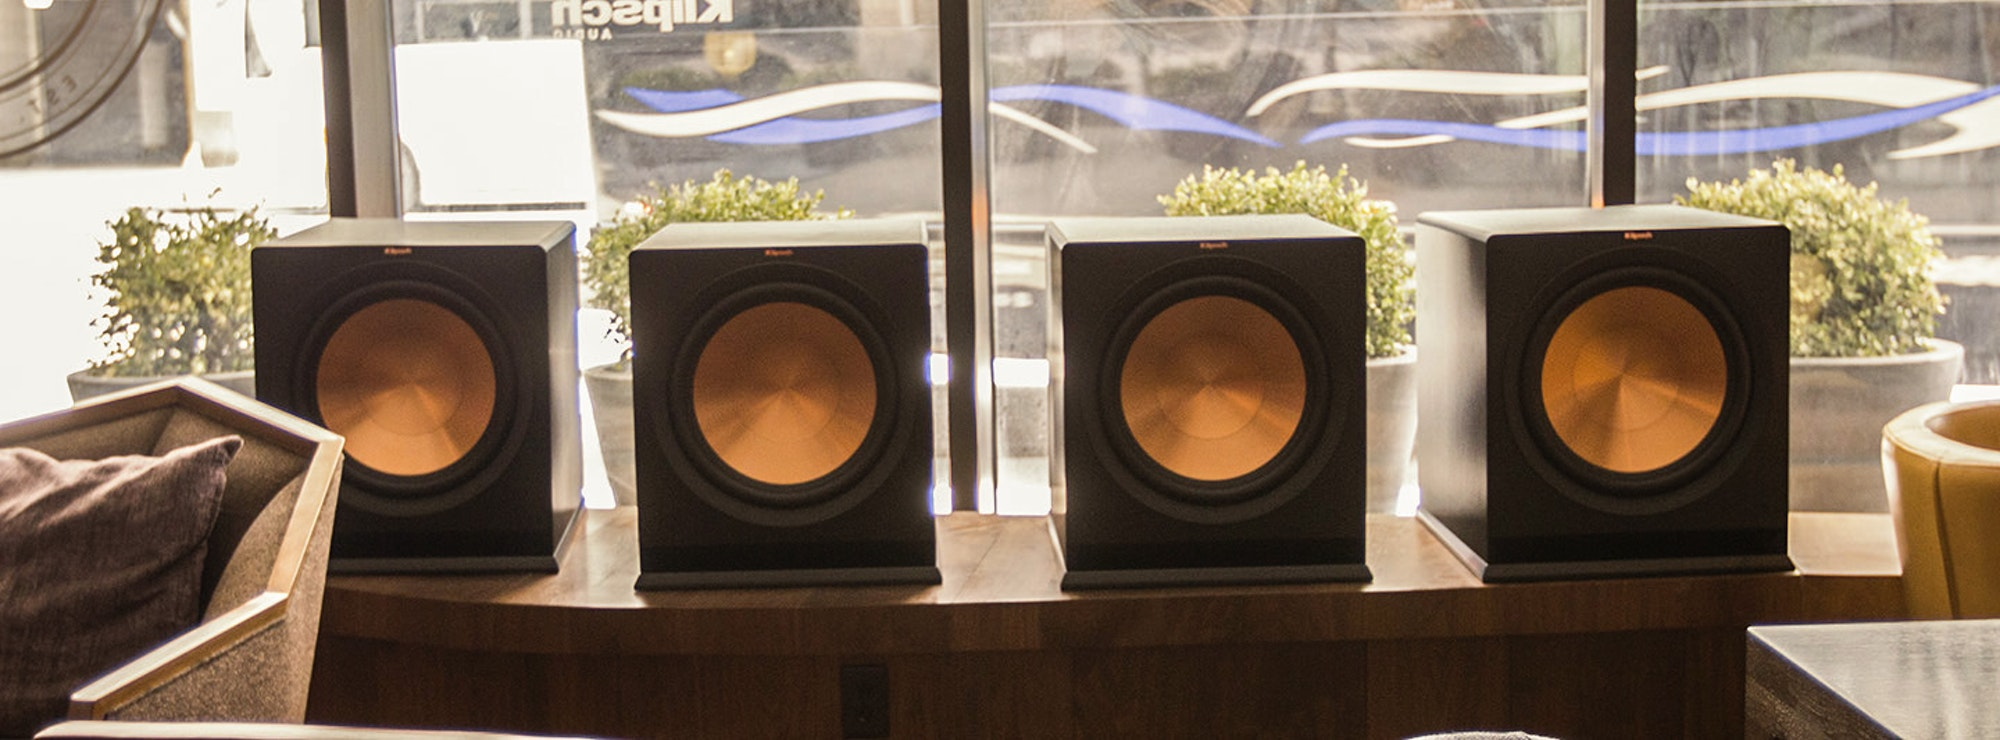 Four subwoofers on a shelf in front of a window